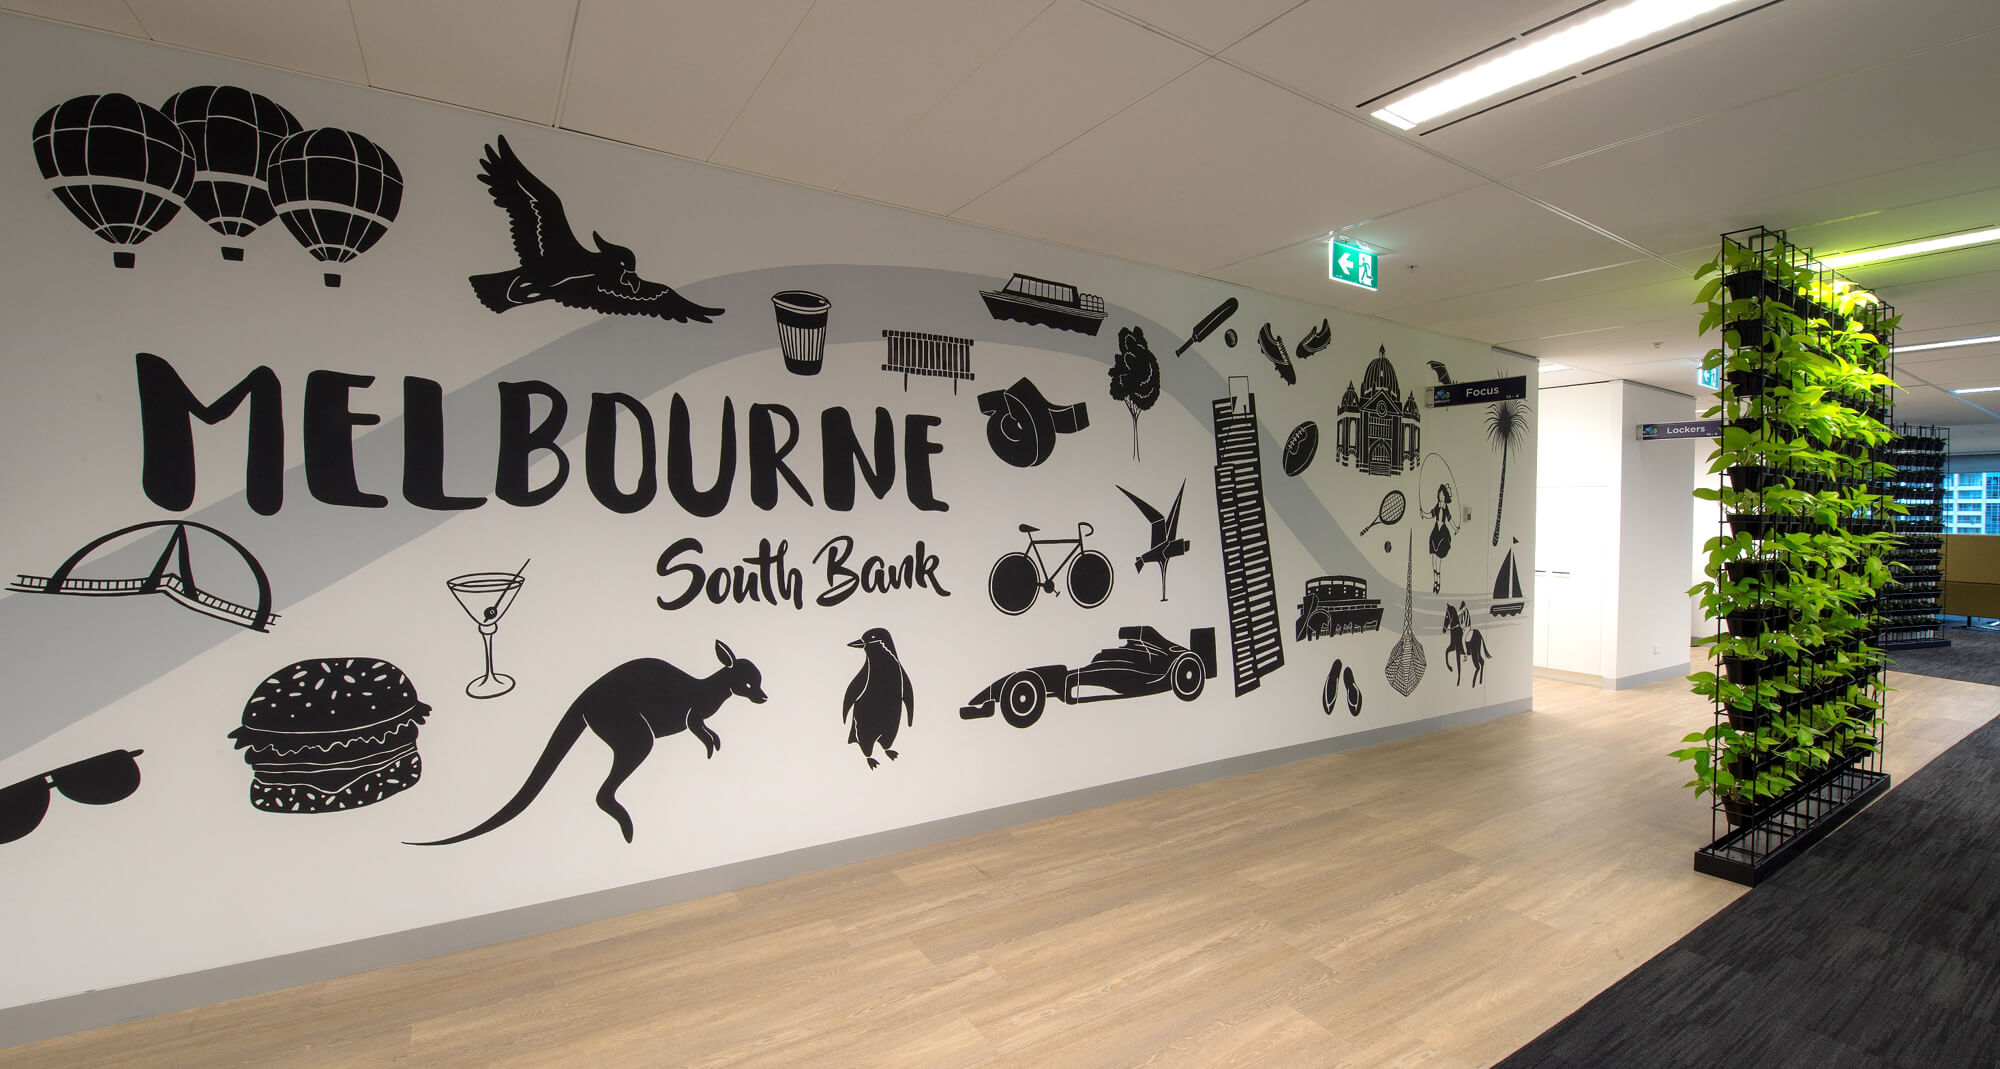 VM Ware office mural, south bank. Photo courtesy of Cube company